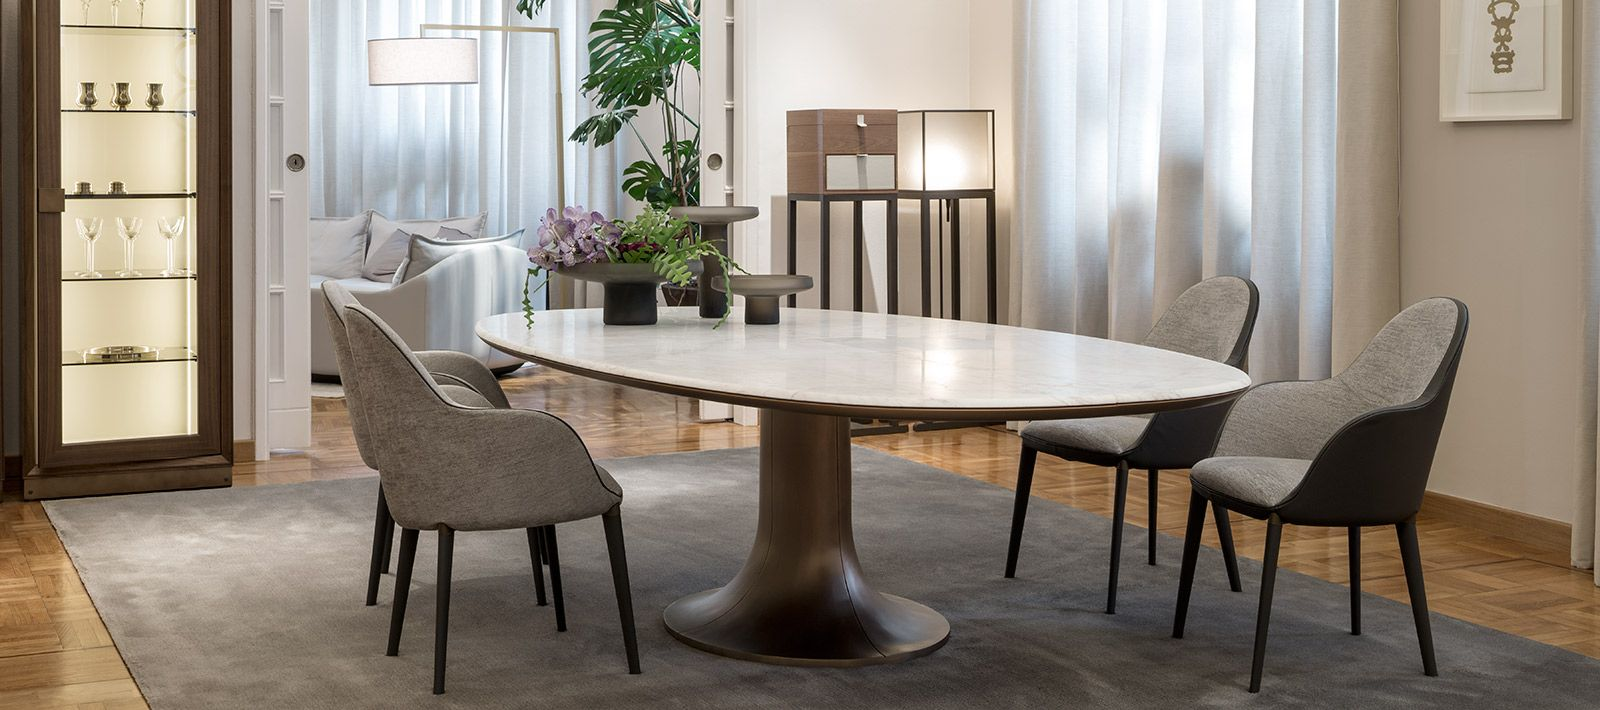 Selene Fully Upholstered Dining Chair By Giorgetti